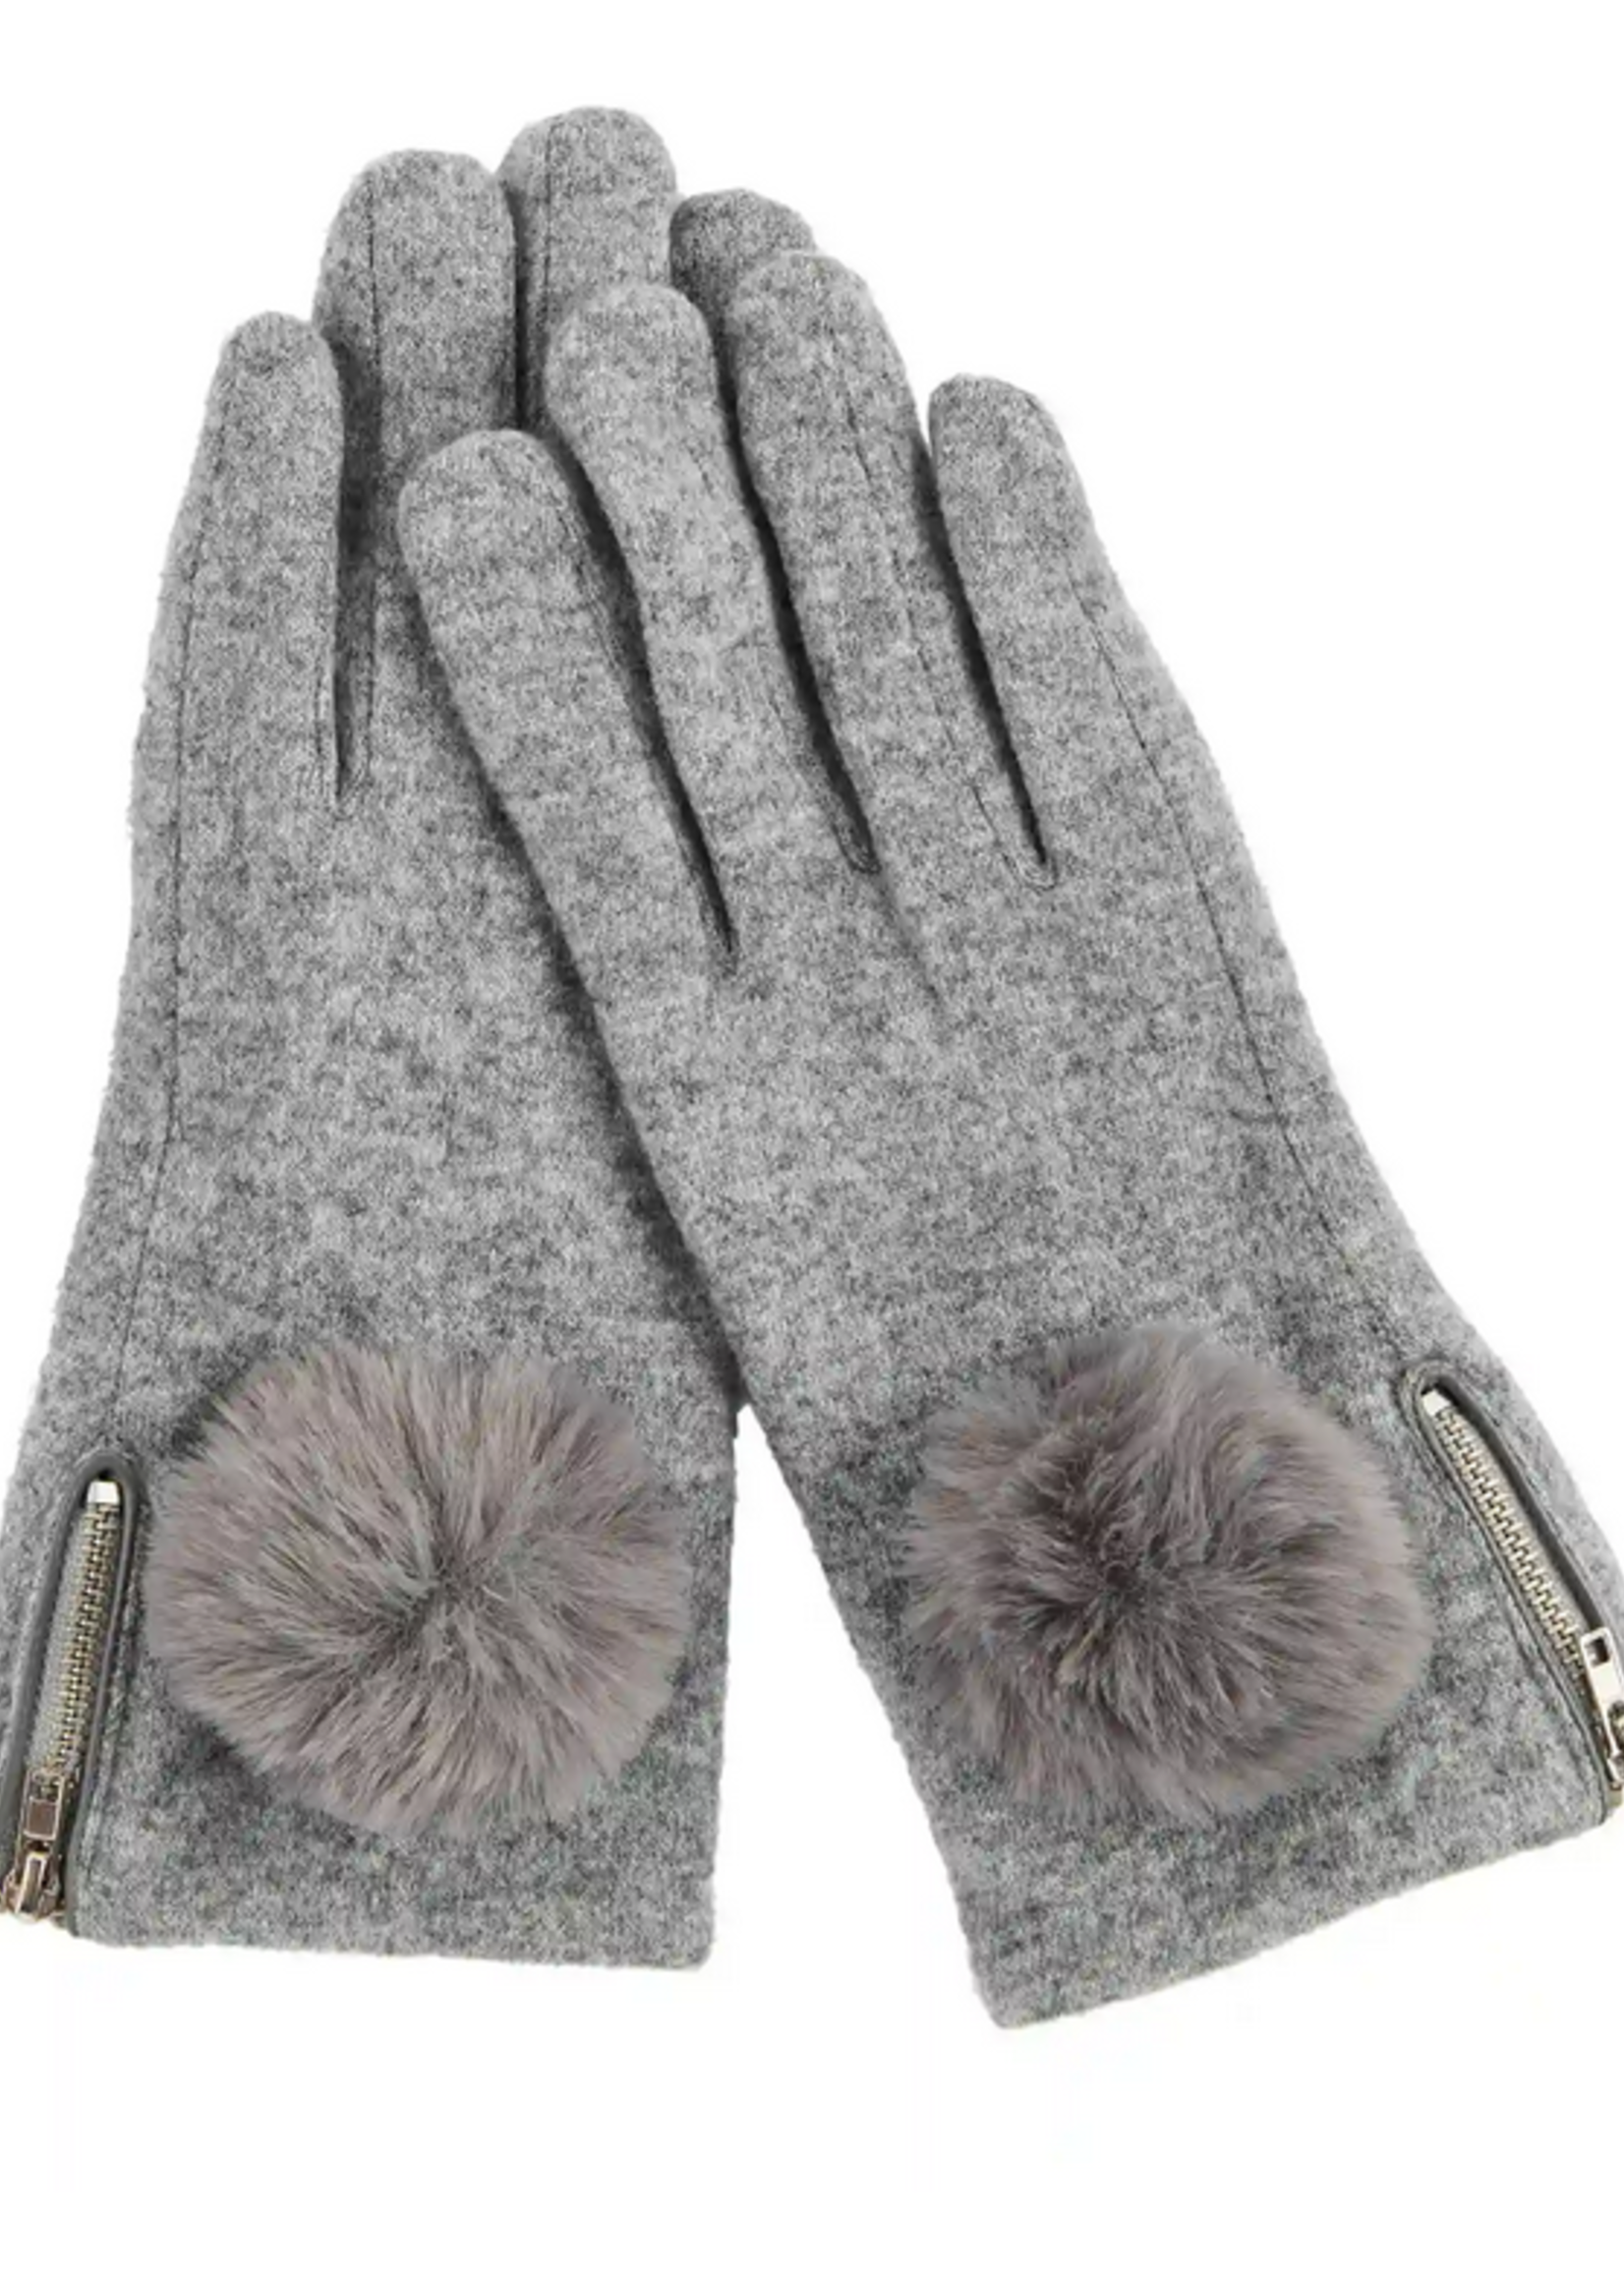 Elitaire Boutique Zippered Poof Glove in Grey